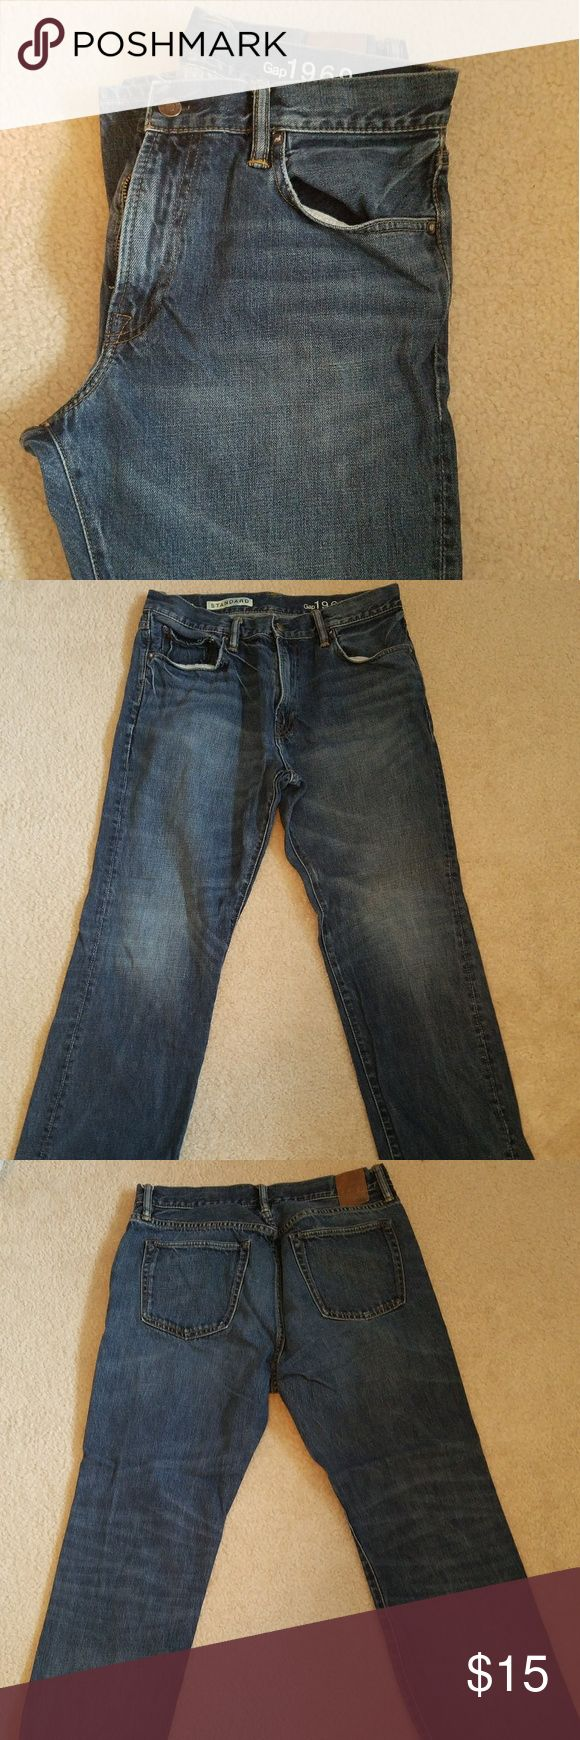 GAP Men's Jeans 32x28 Great condition! GAP Jeans